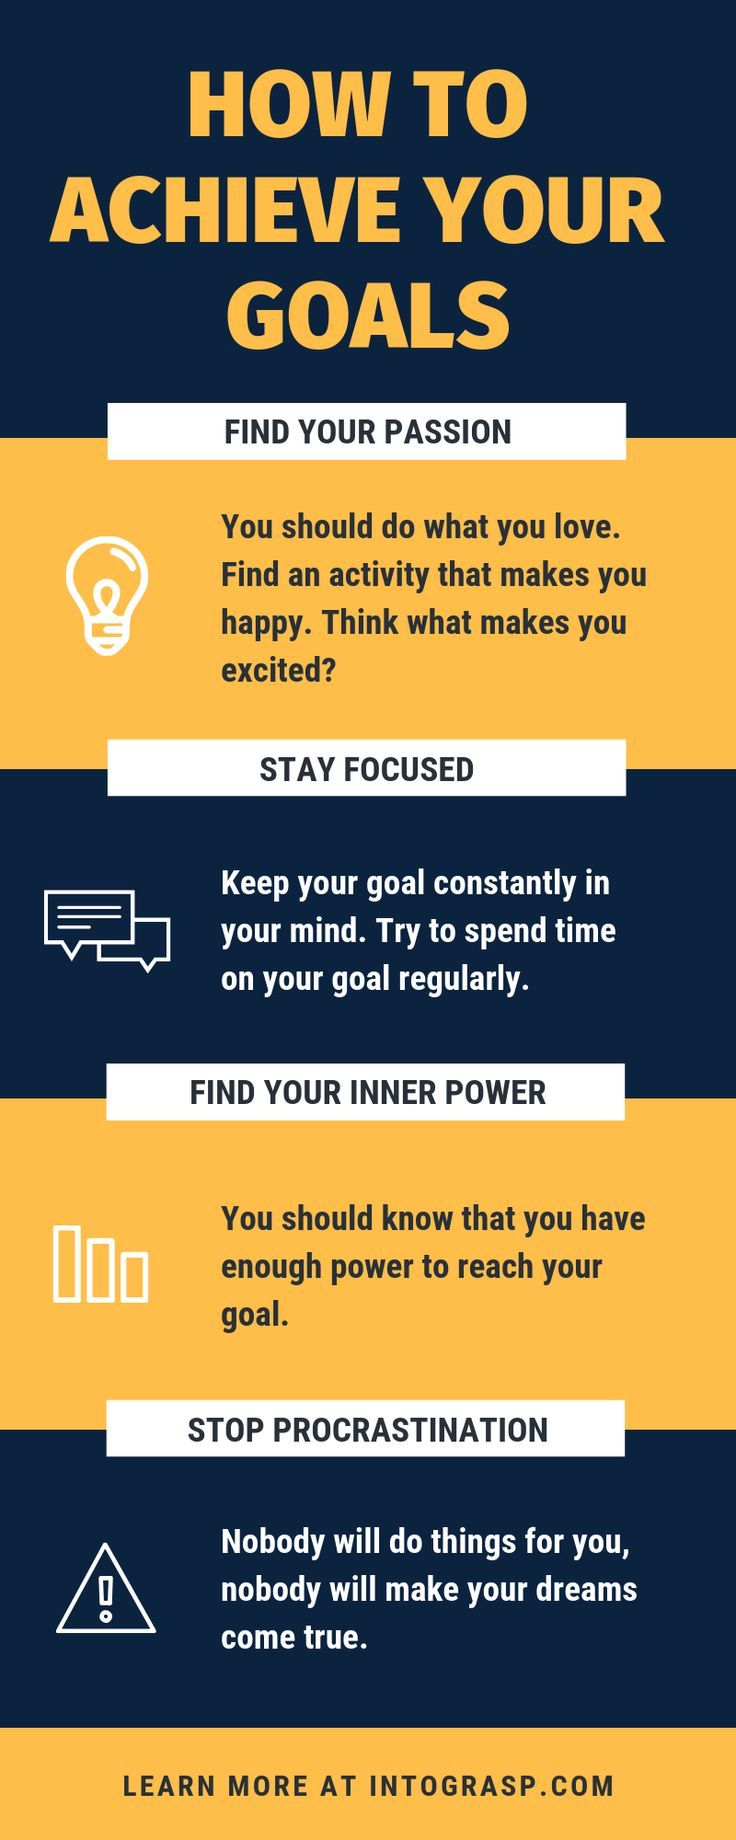 How to Achieve Your Goals Faster!